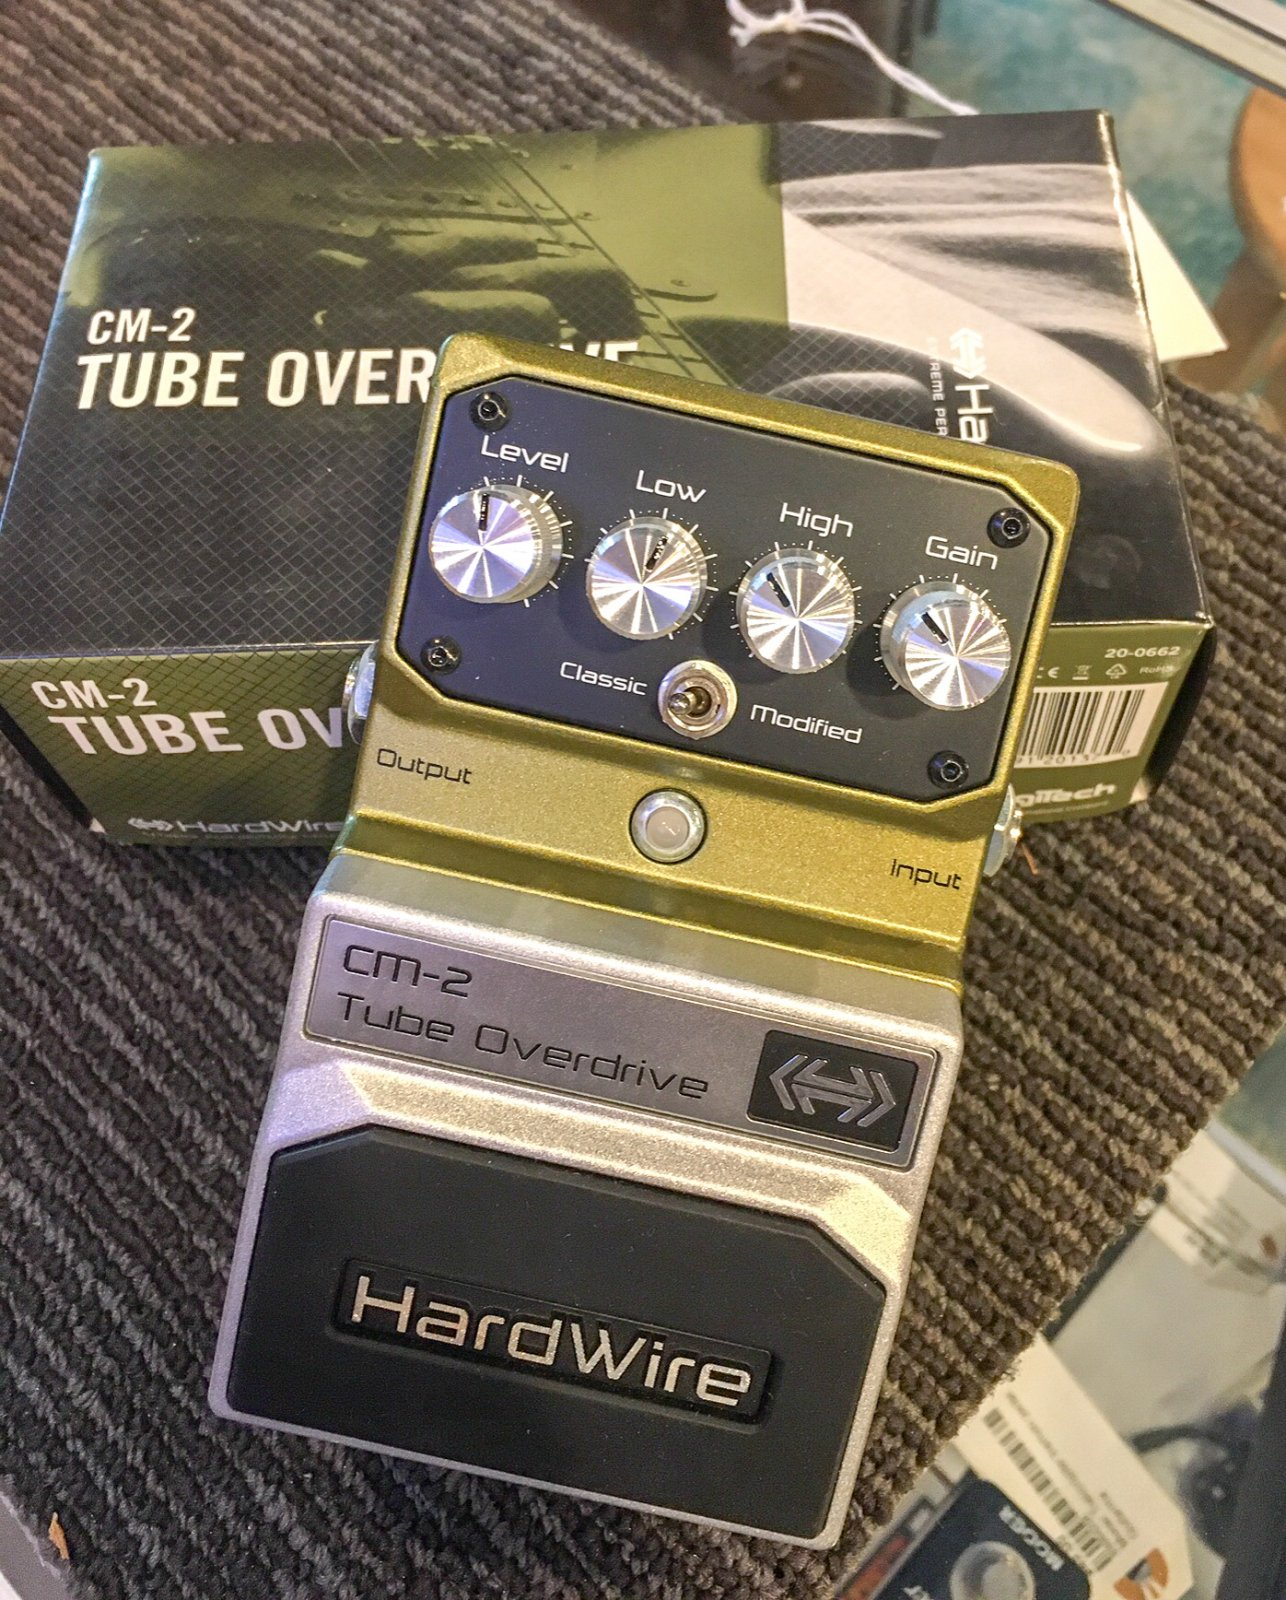 Hardwire CM-2 Tube Overdrive pedal